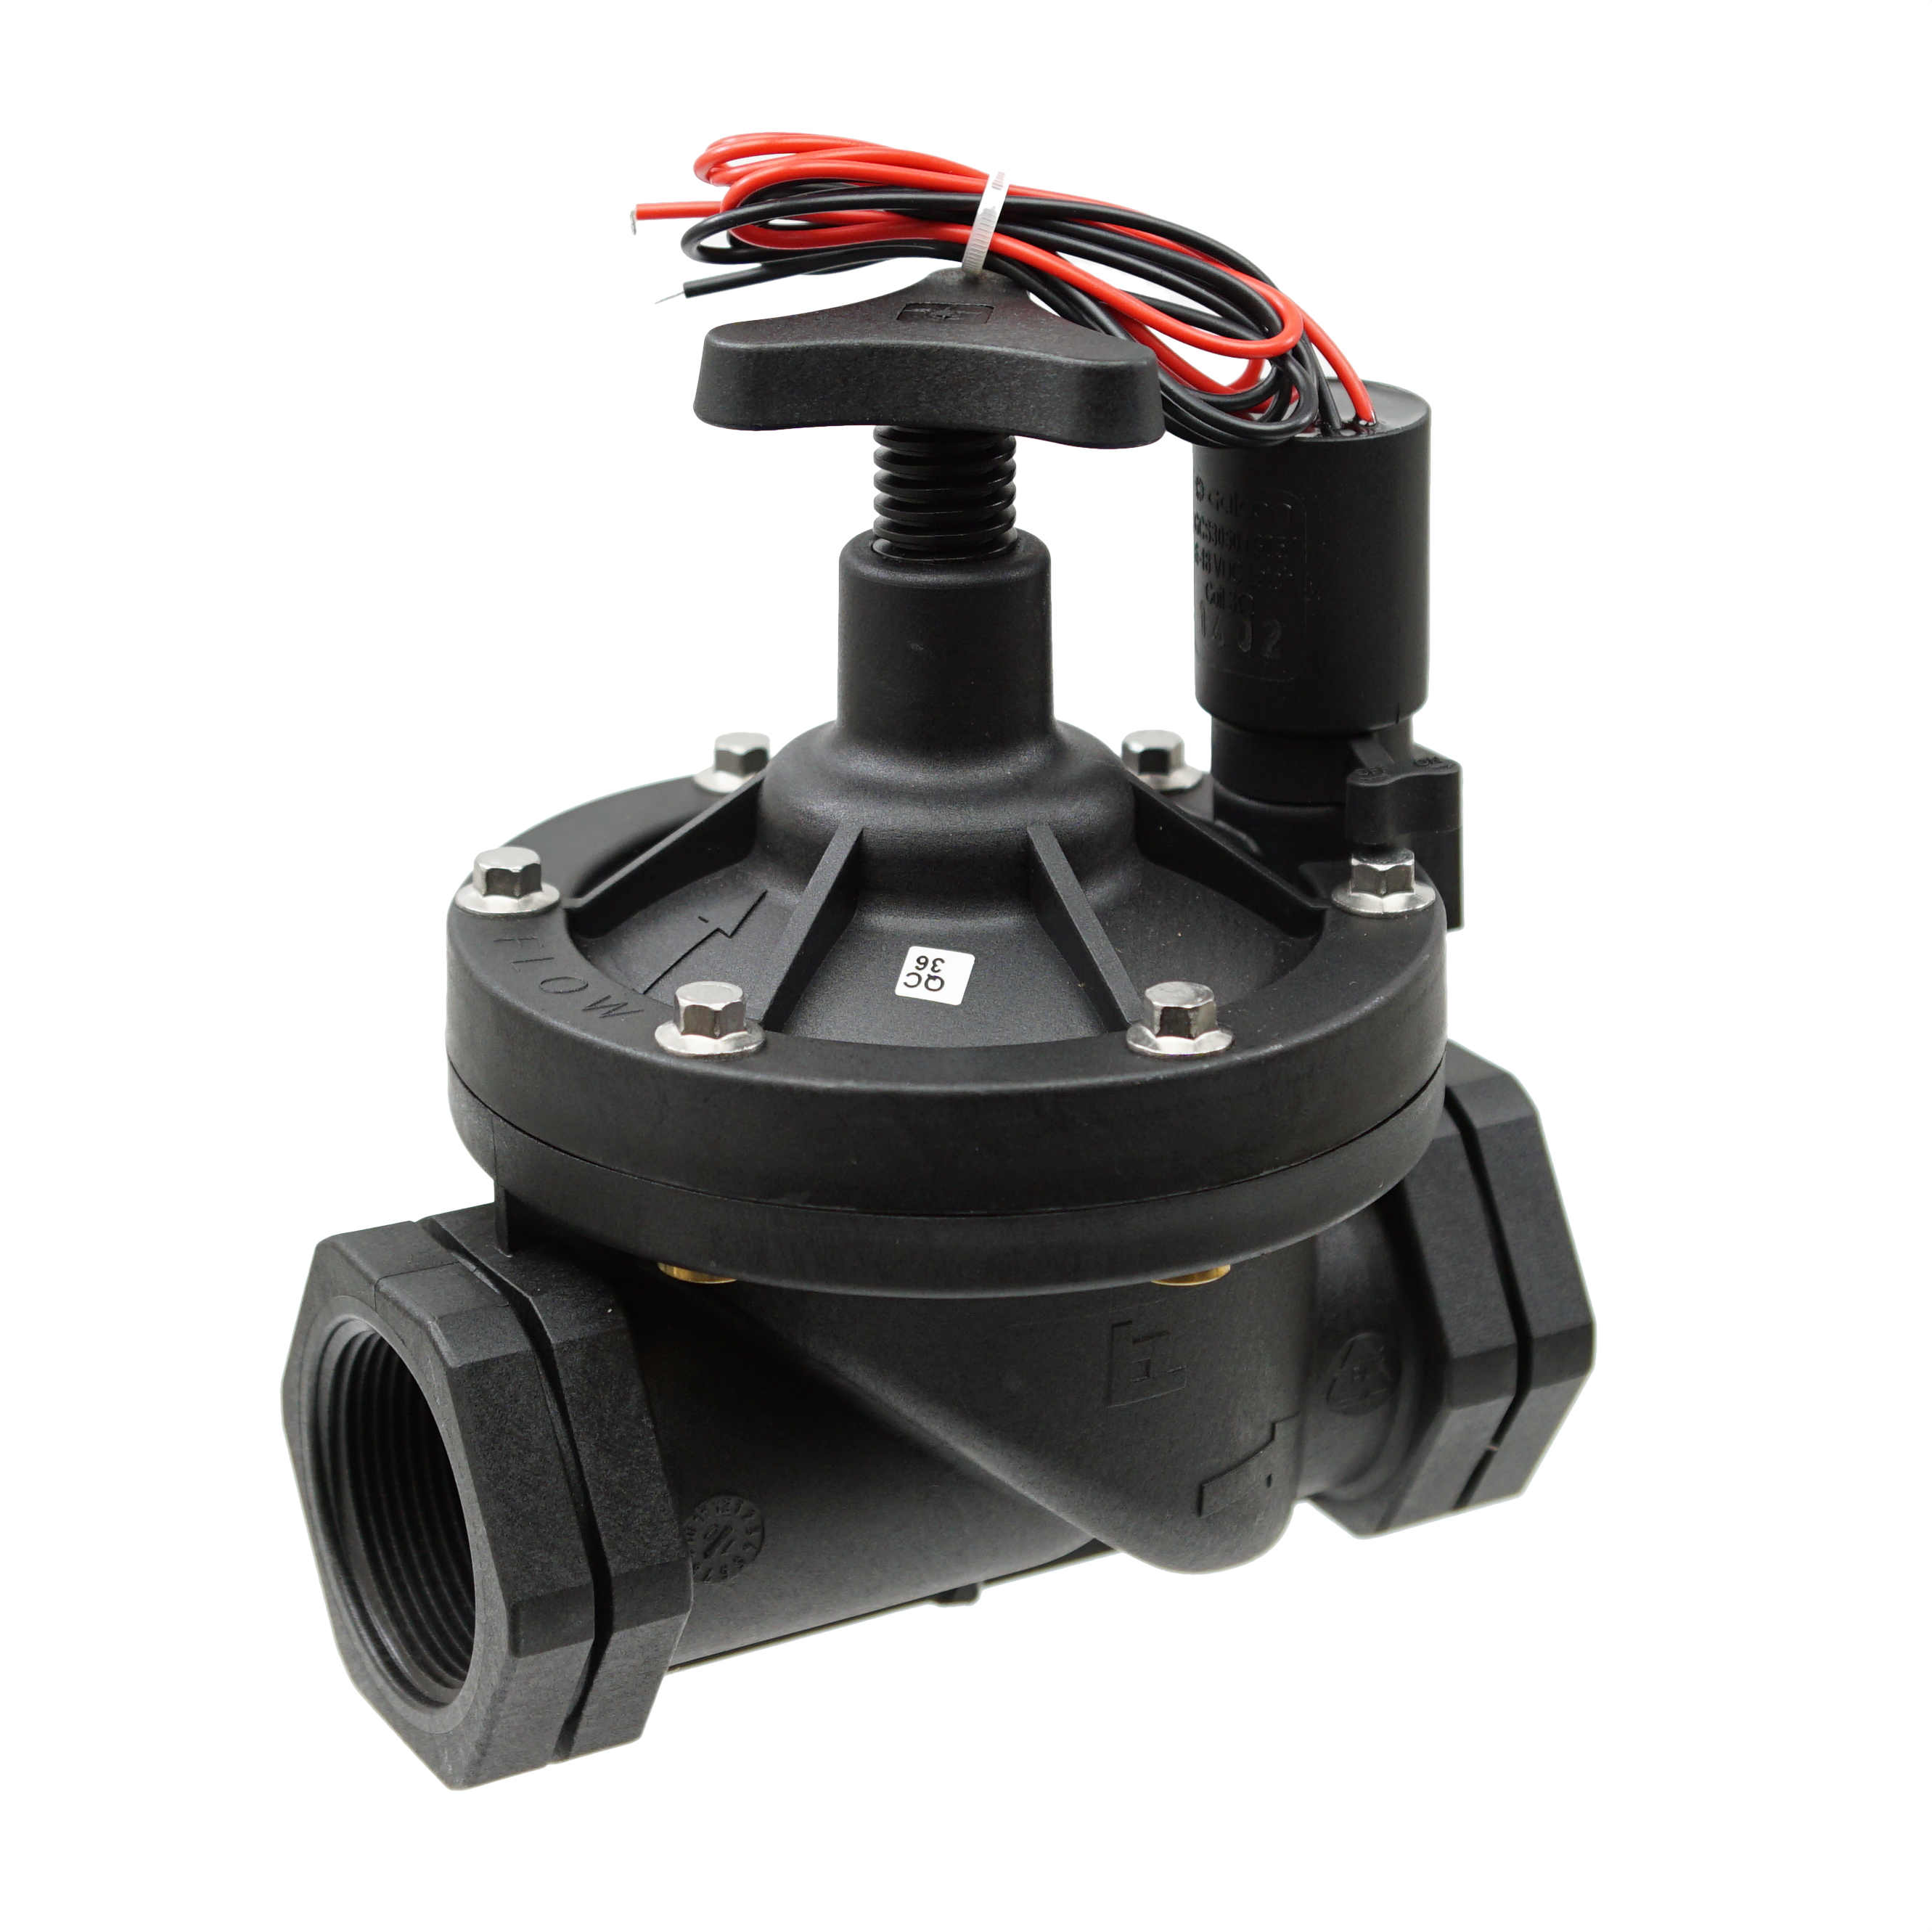 Galcon Valve w/ DC Latching Solenoid for Battery Operated Controllers